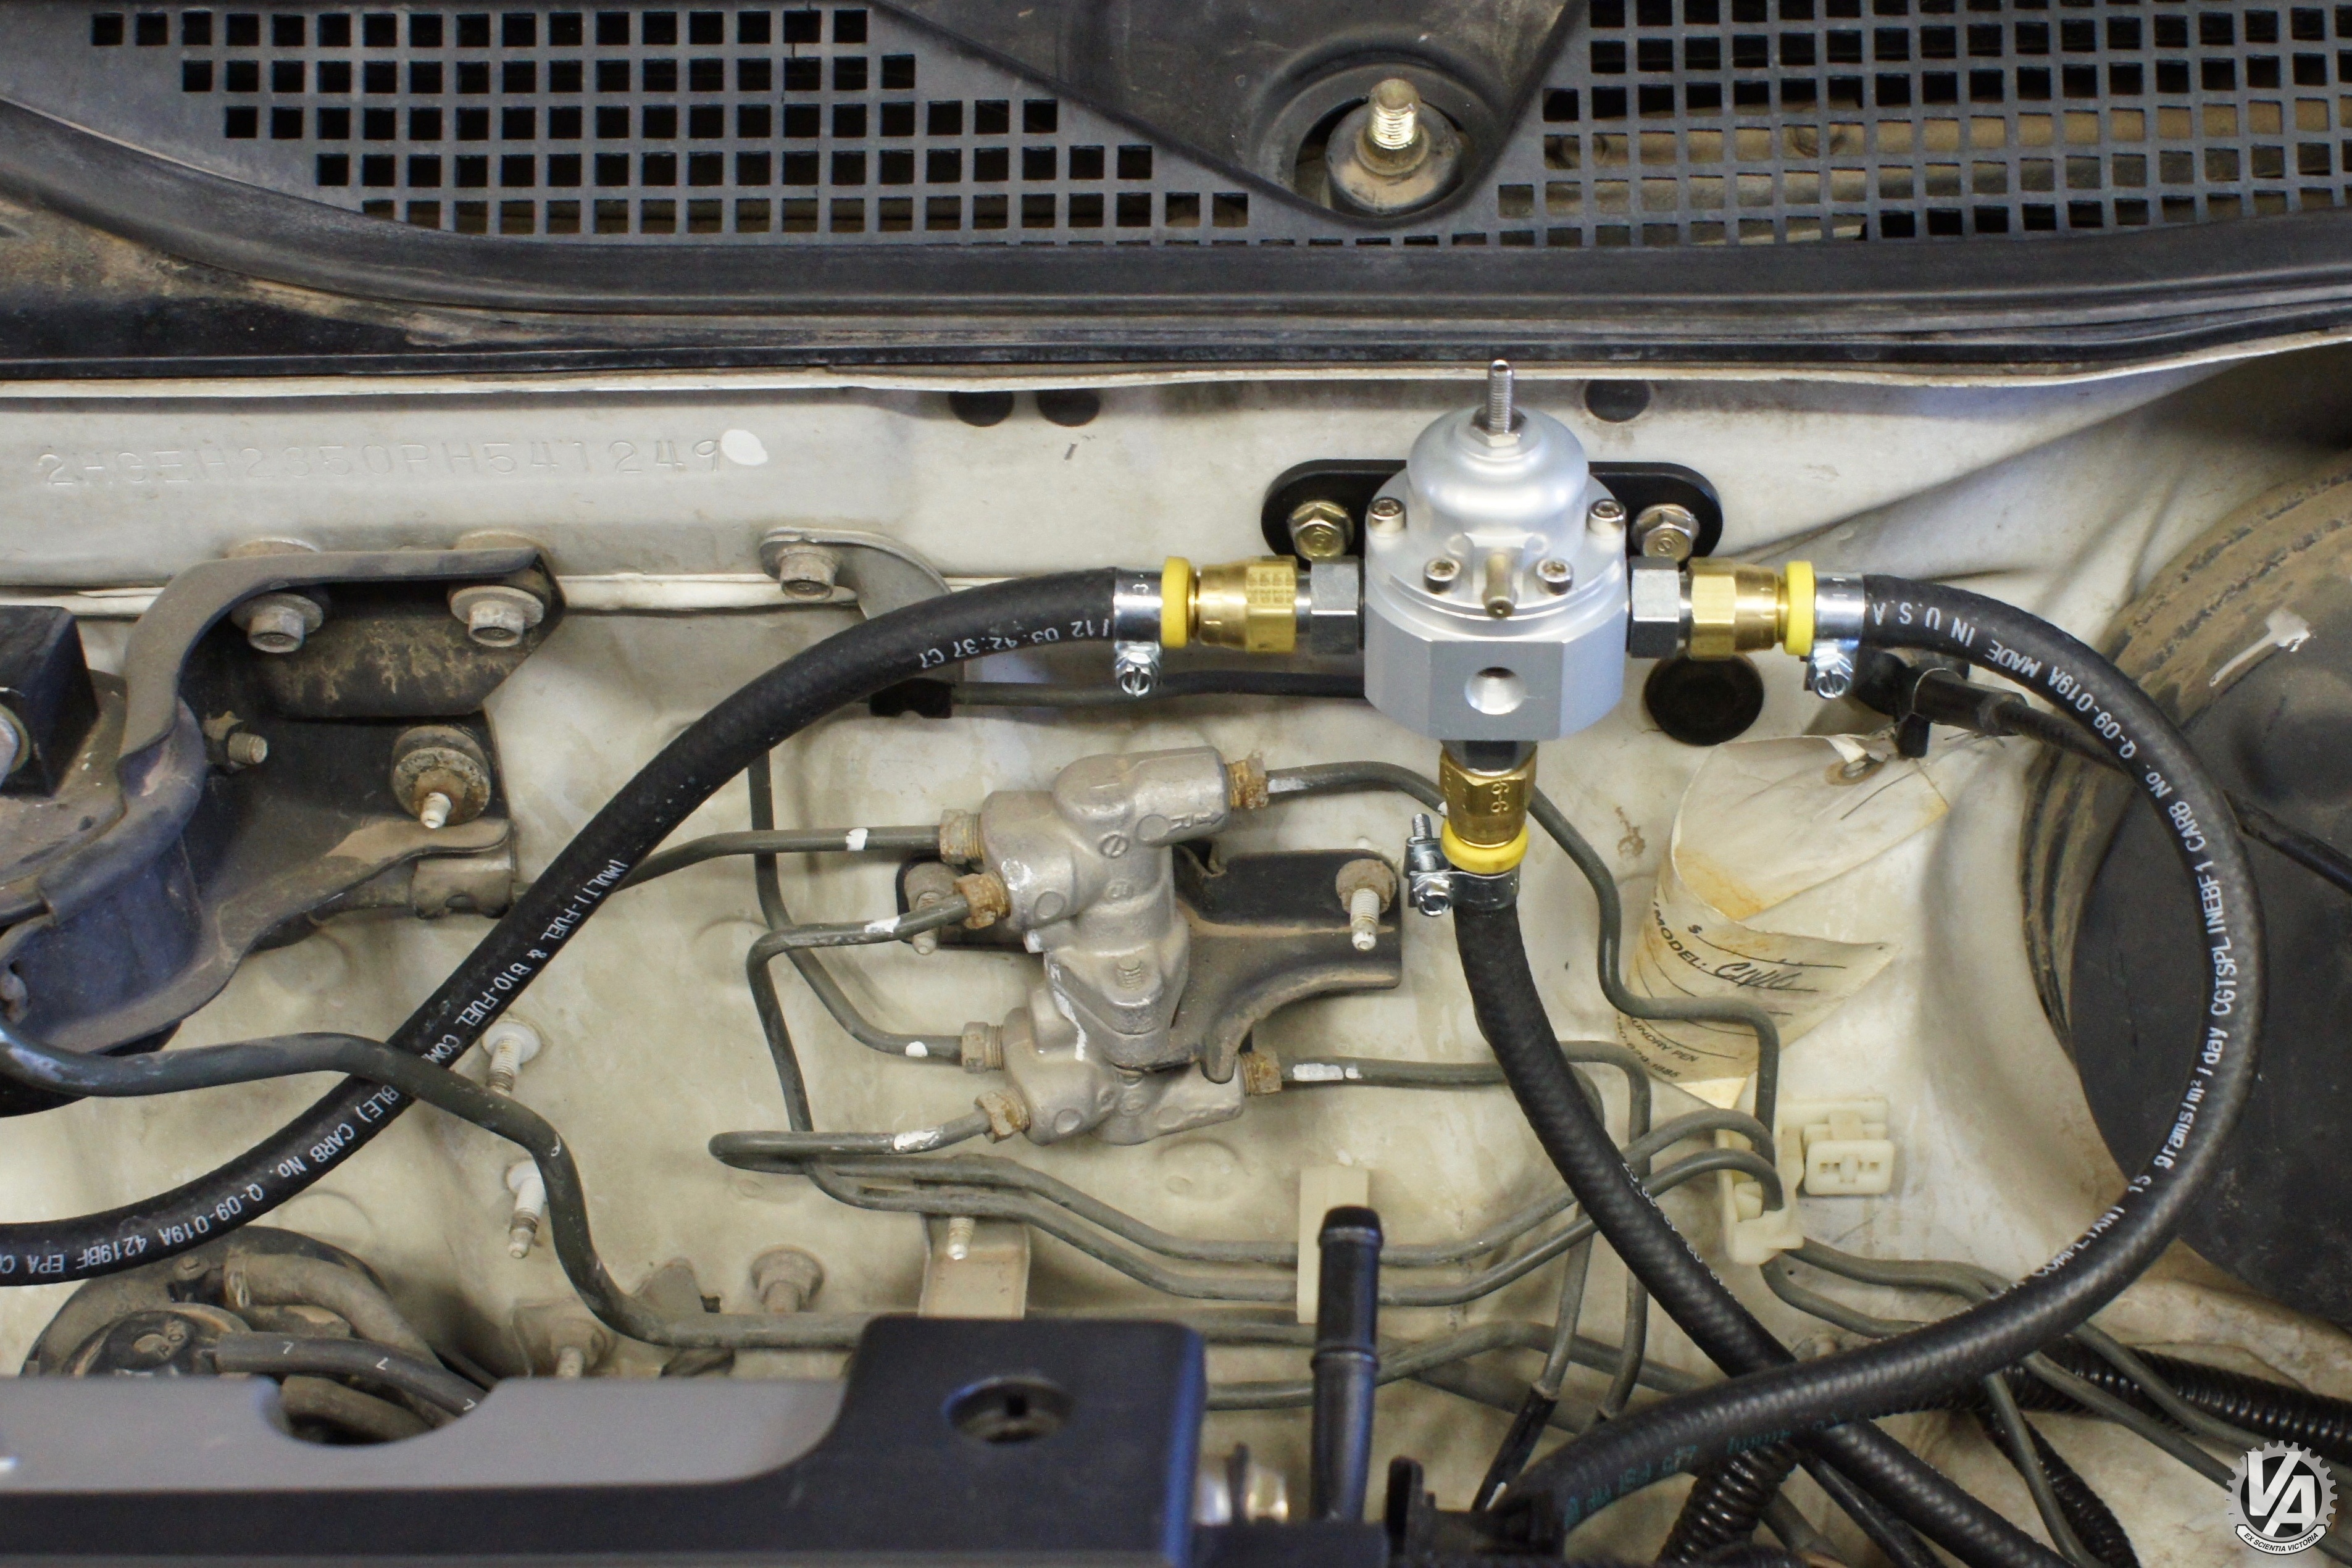 Budget K Series Engine Swap The Parts List Vtec Academy 92 Honda Civic Si Wiring Harness Budgetk Fpr